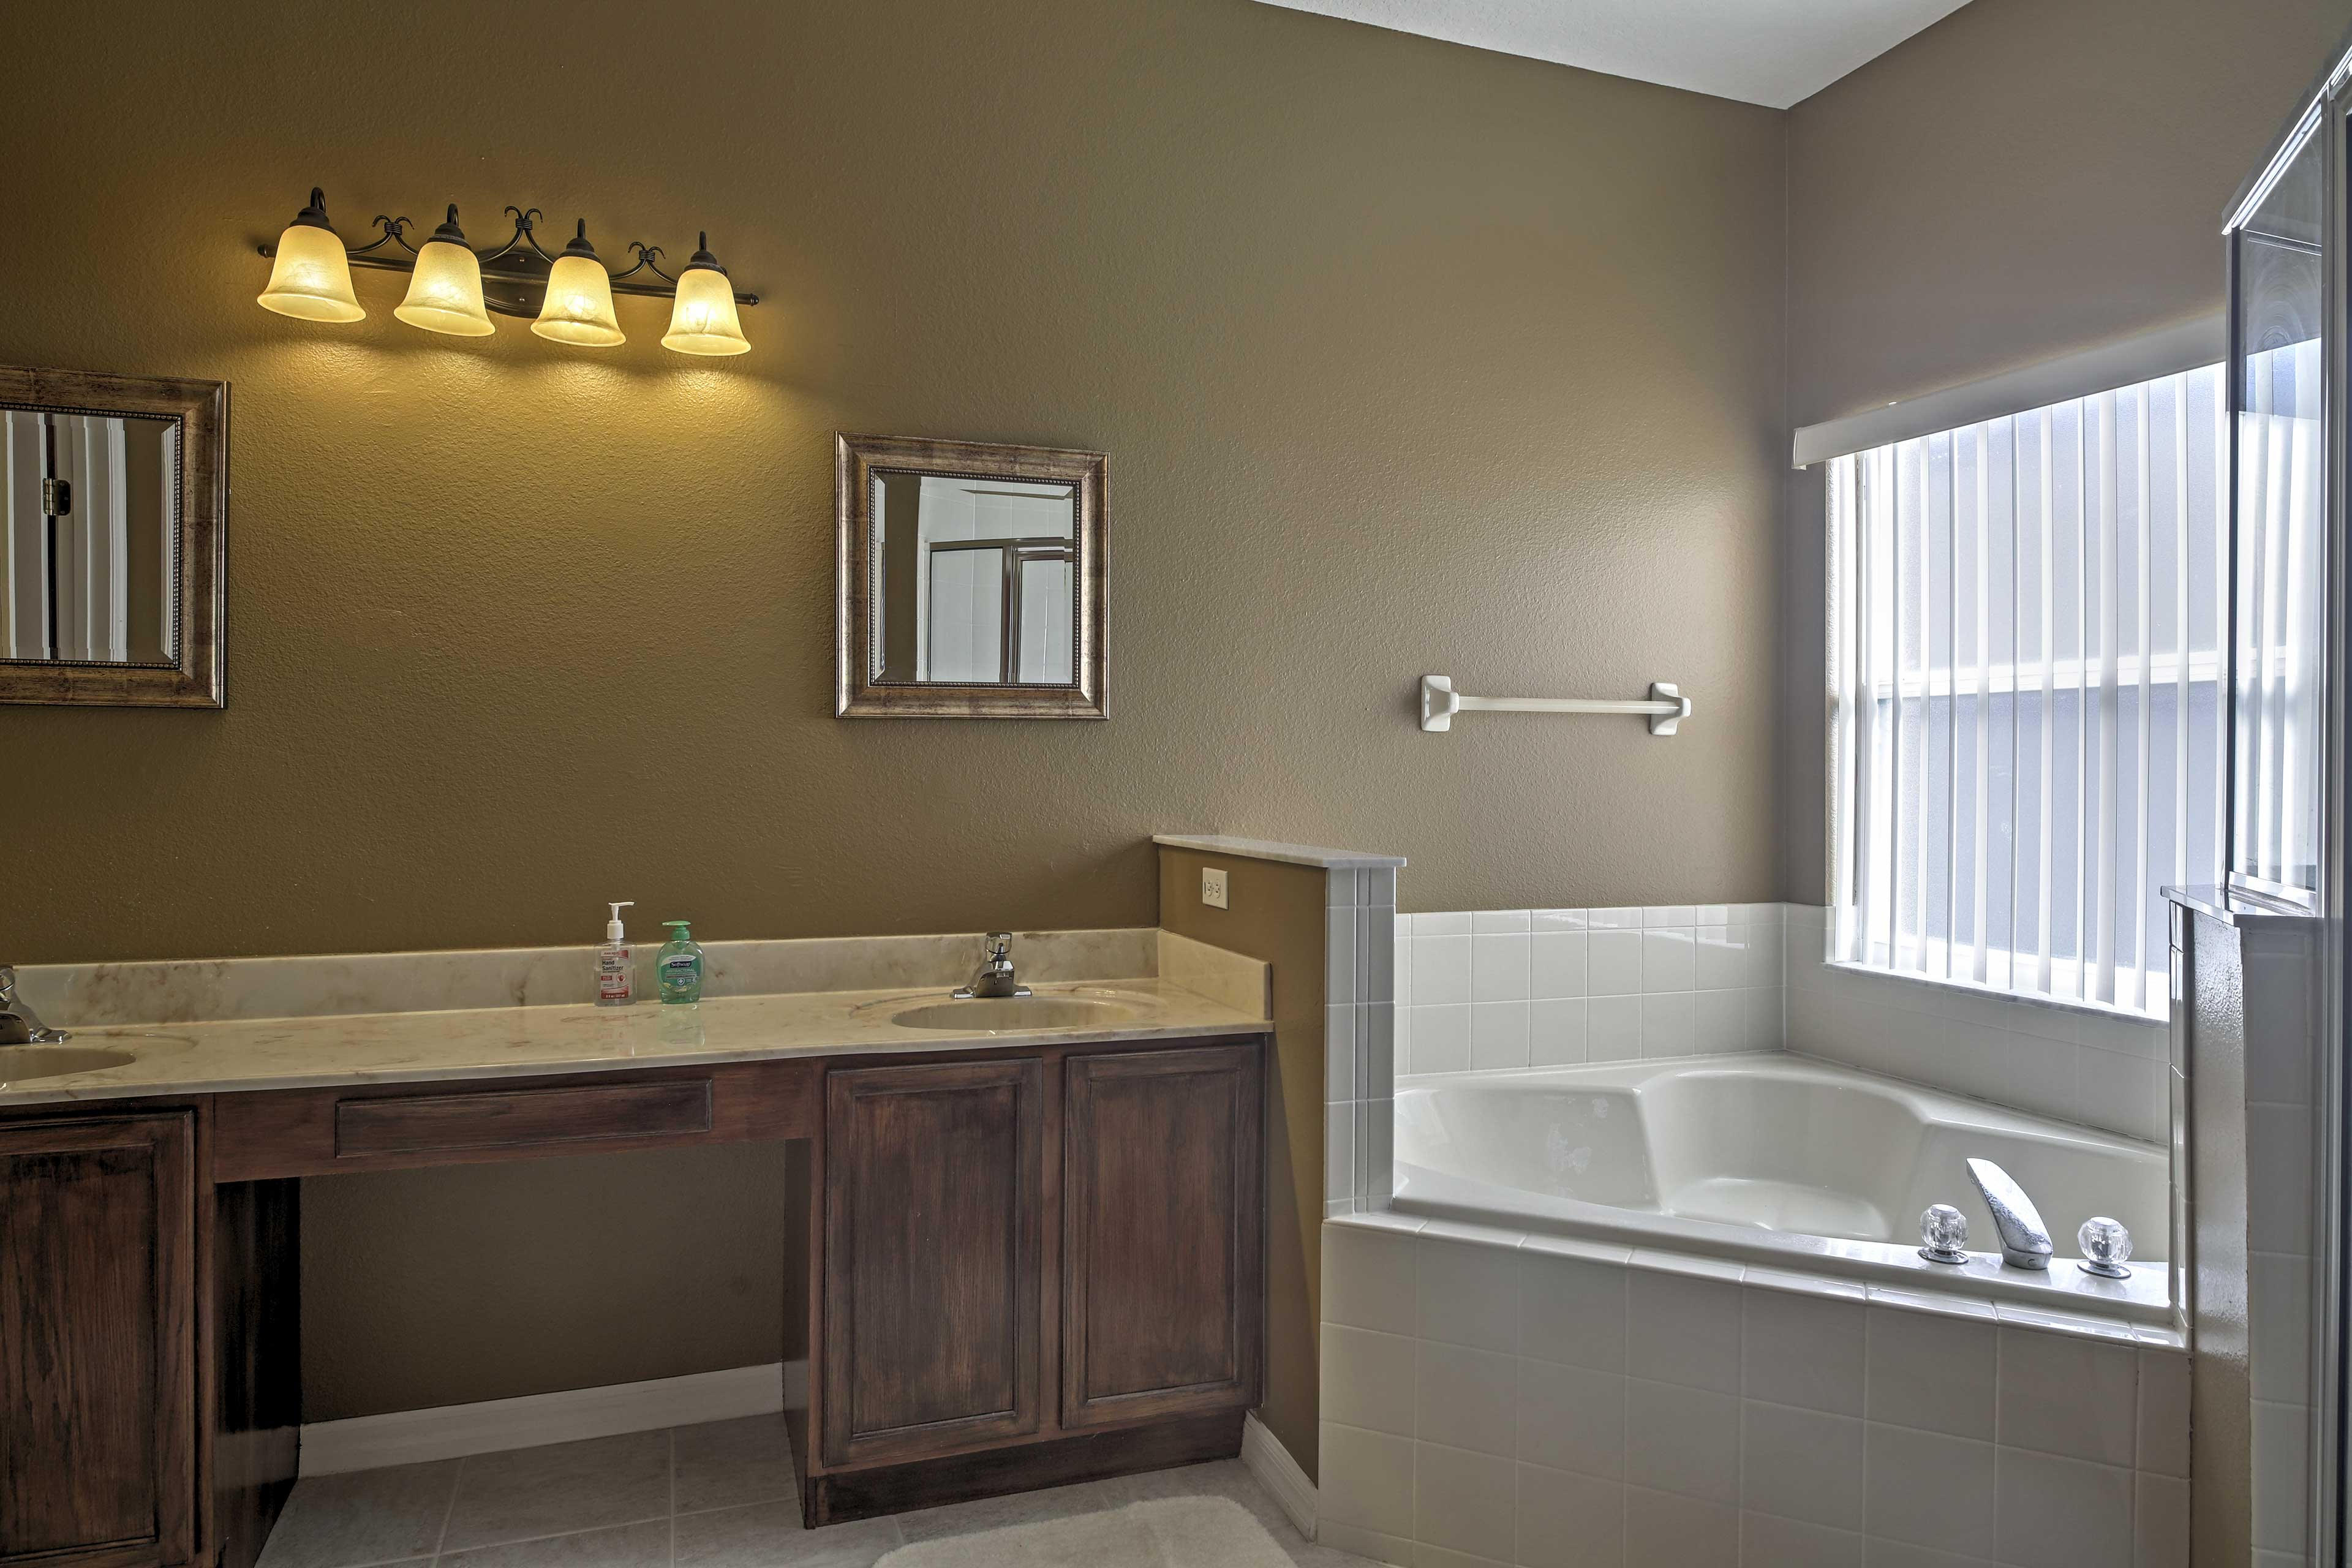 Freshen up in the bath tub or shower in this pristine master bathroom.